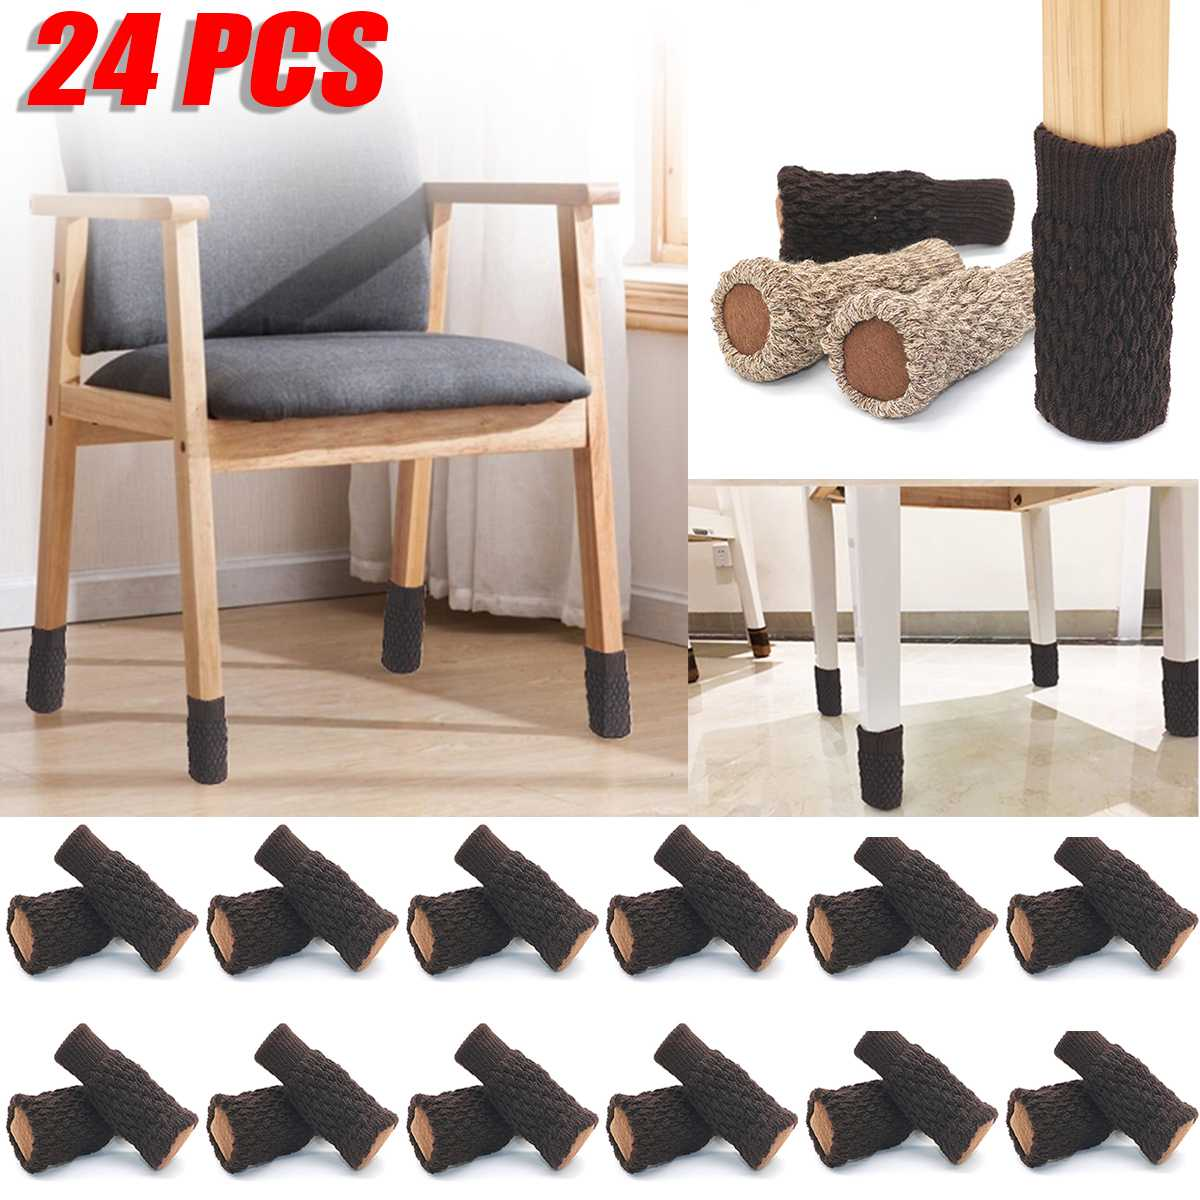 24PCS Table Furniture Feet Sleeve Cover Protectors Chair Leg Socks Cloth Gloves Floor Protection Knitting Wool Socks Anti-slip